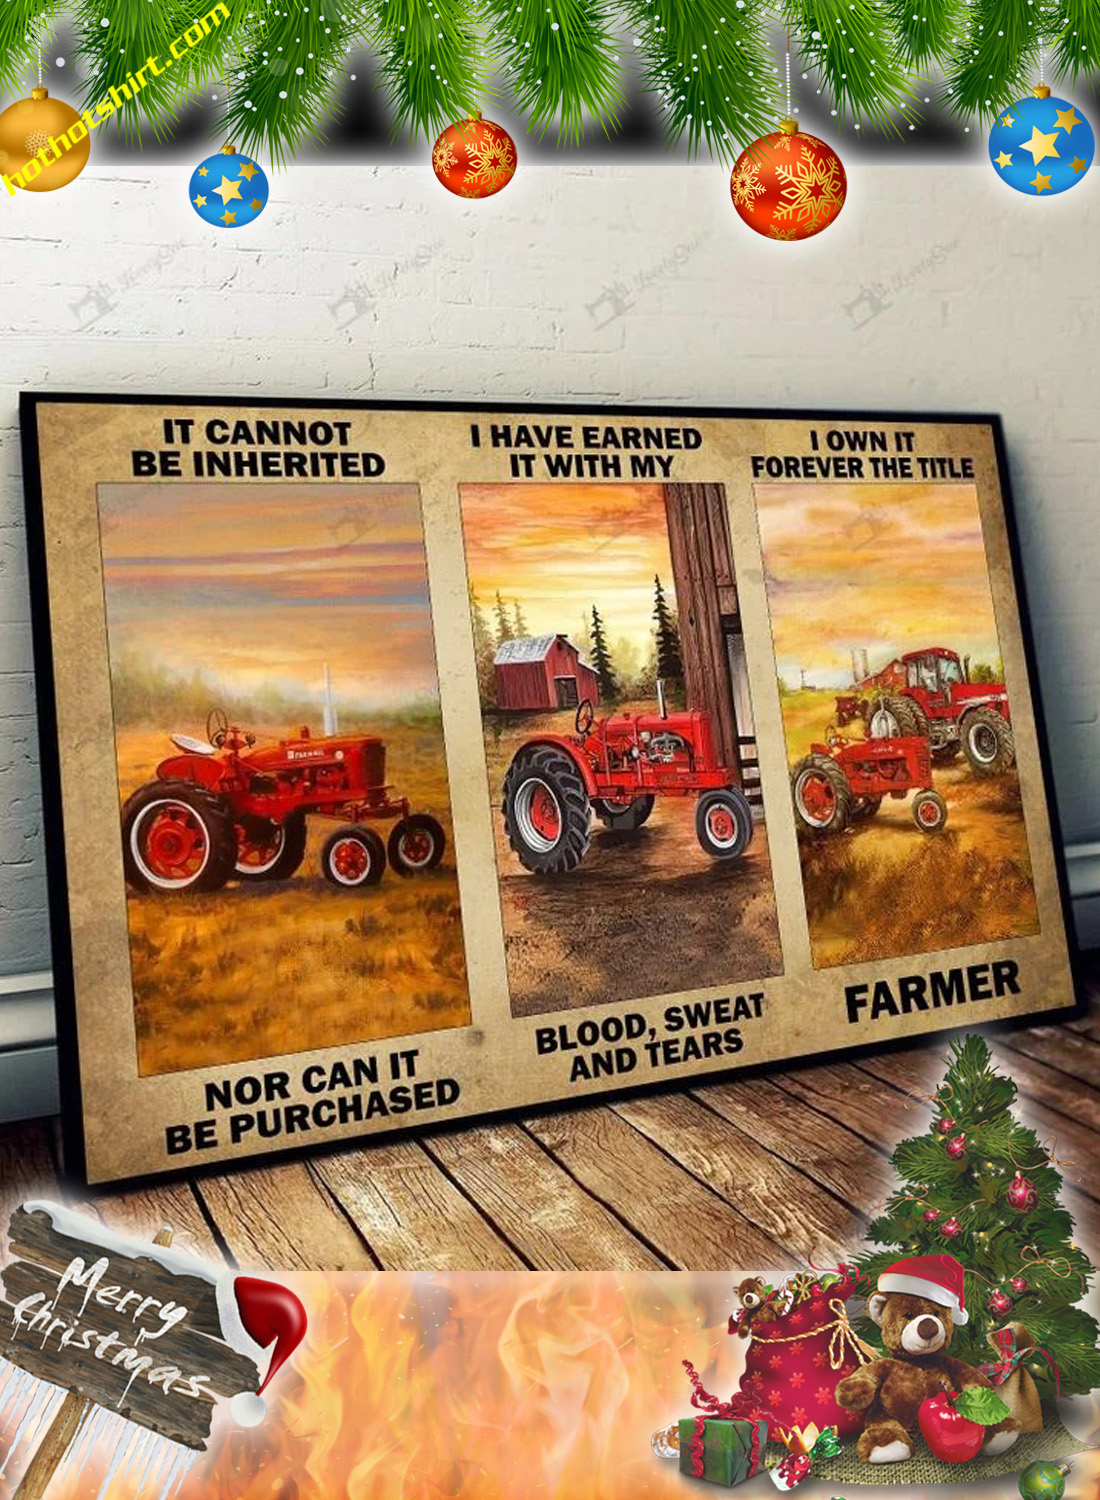 Red tractor It cannot be inherited nor can it be purchased poster 2